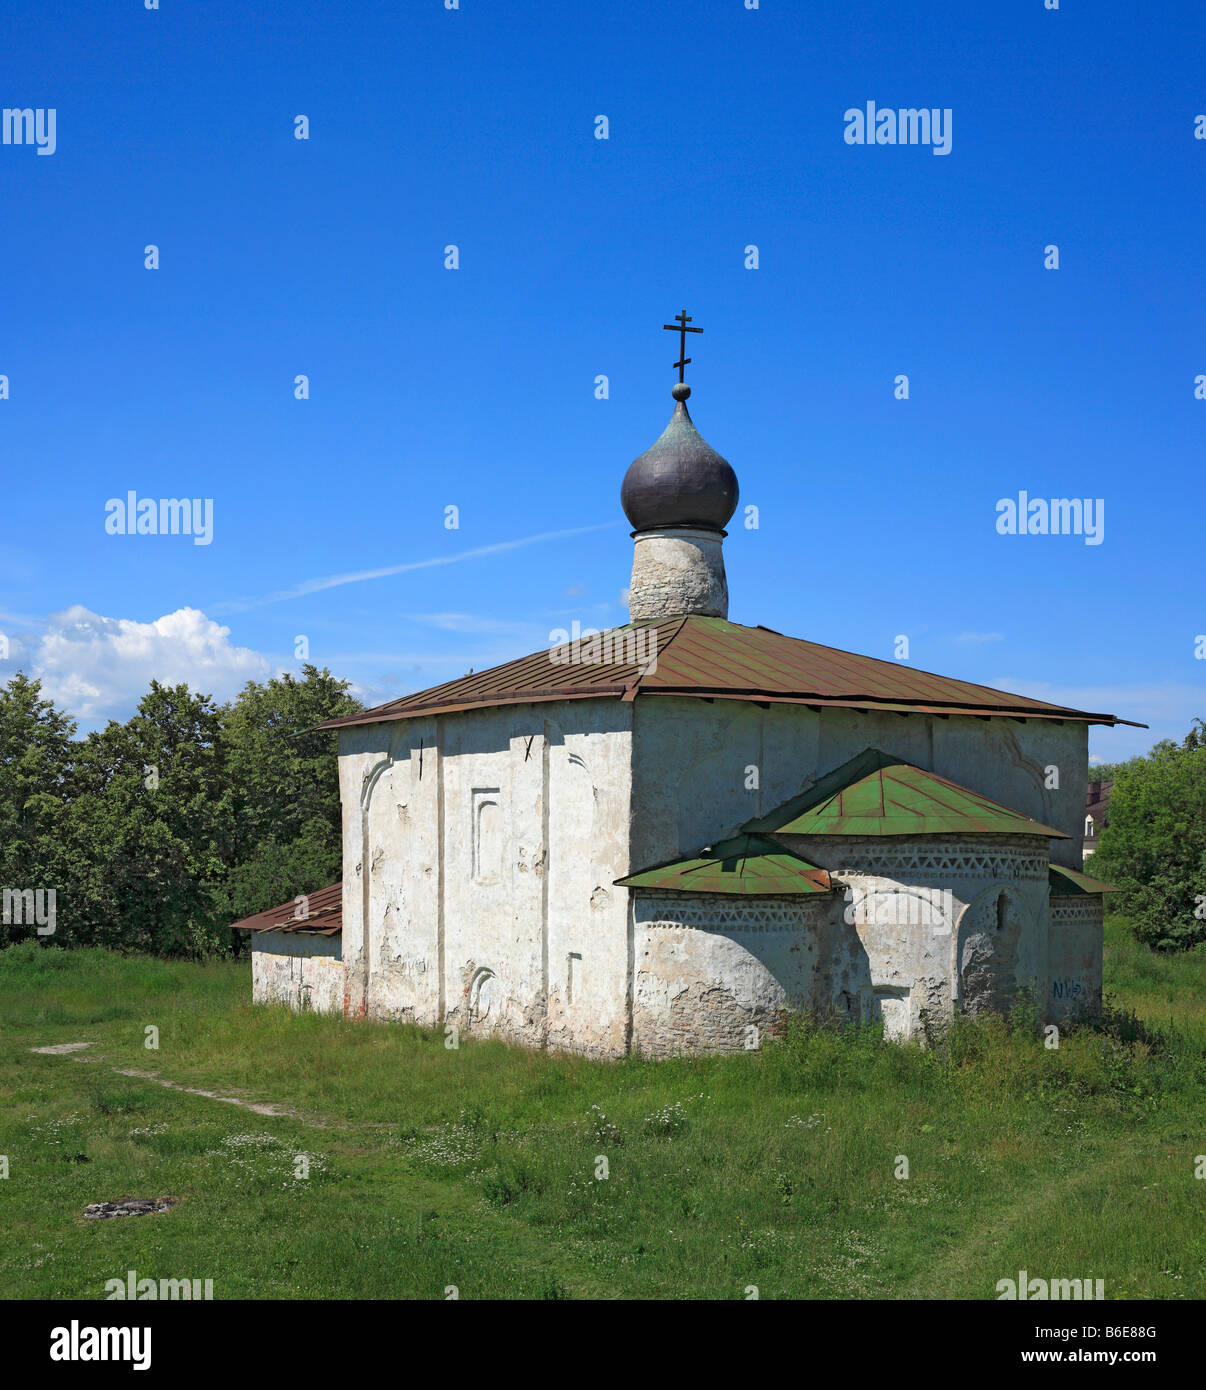 Religious architecture, dome of the church of St. Cosmas and Damian (1383), Pskov, Russia - Stock Image